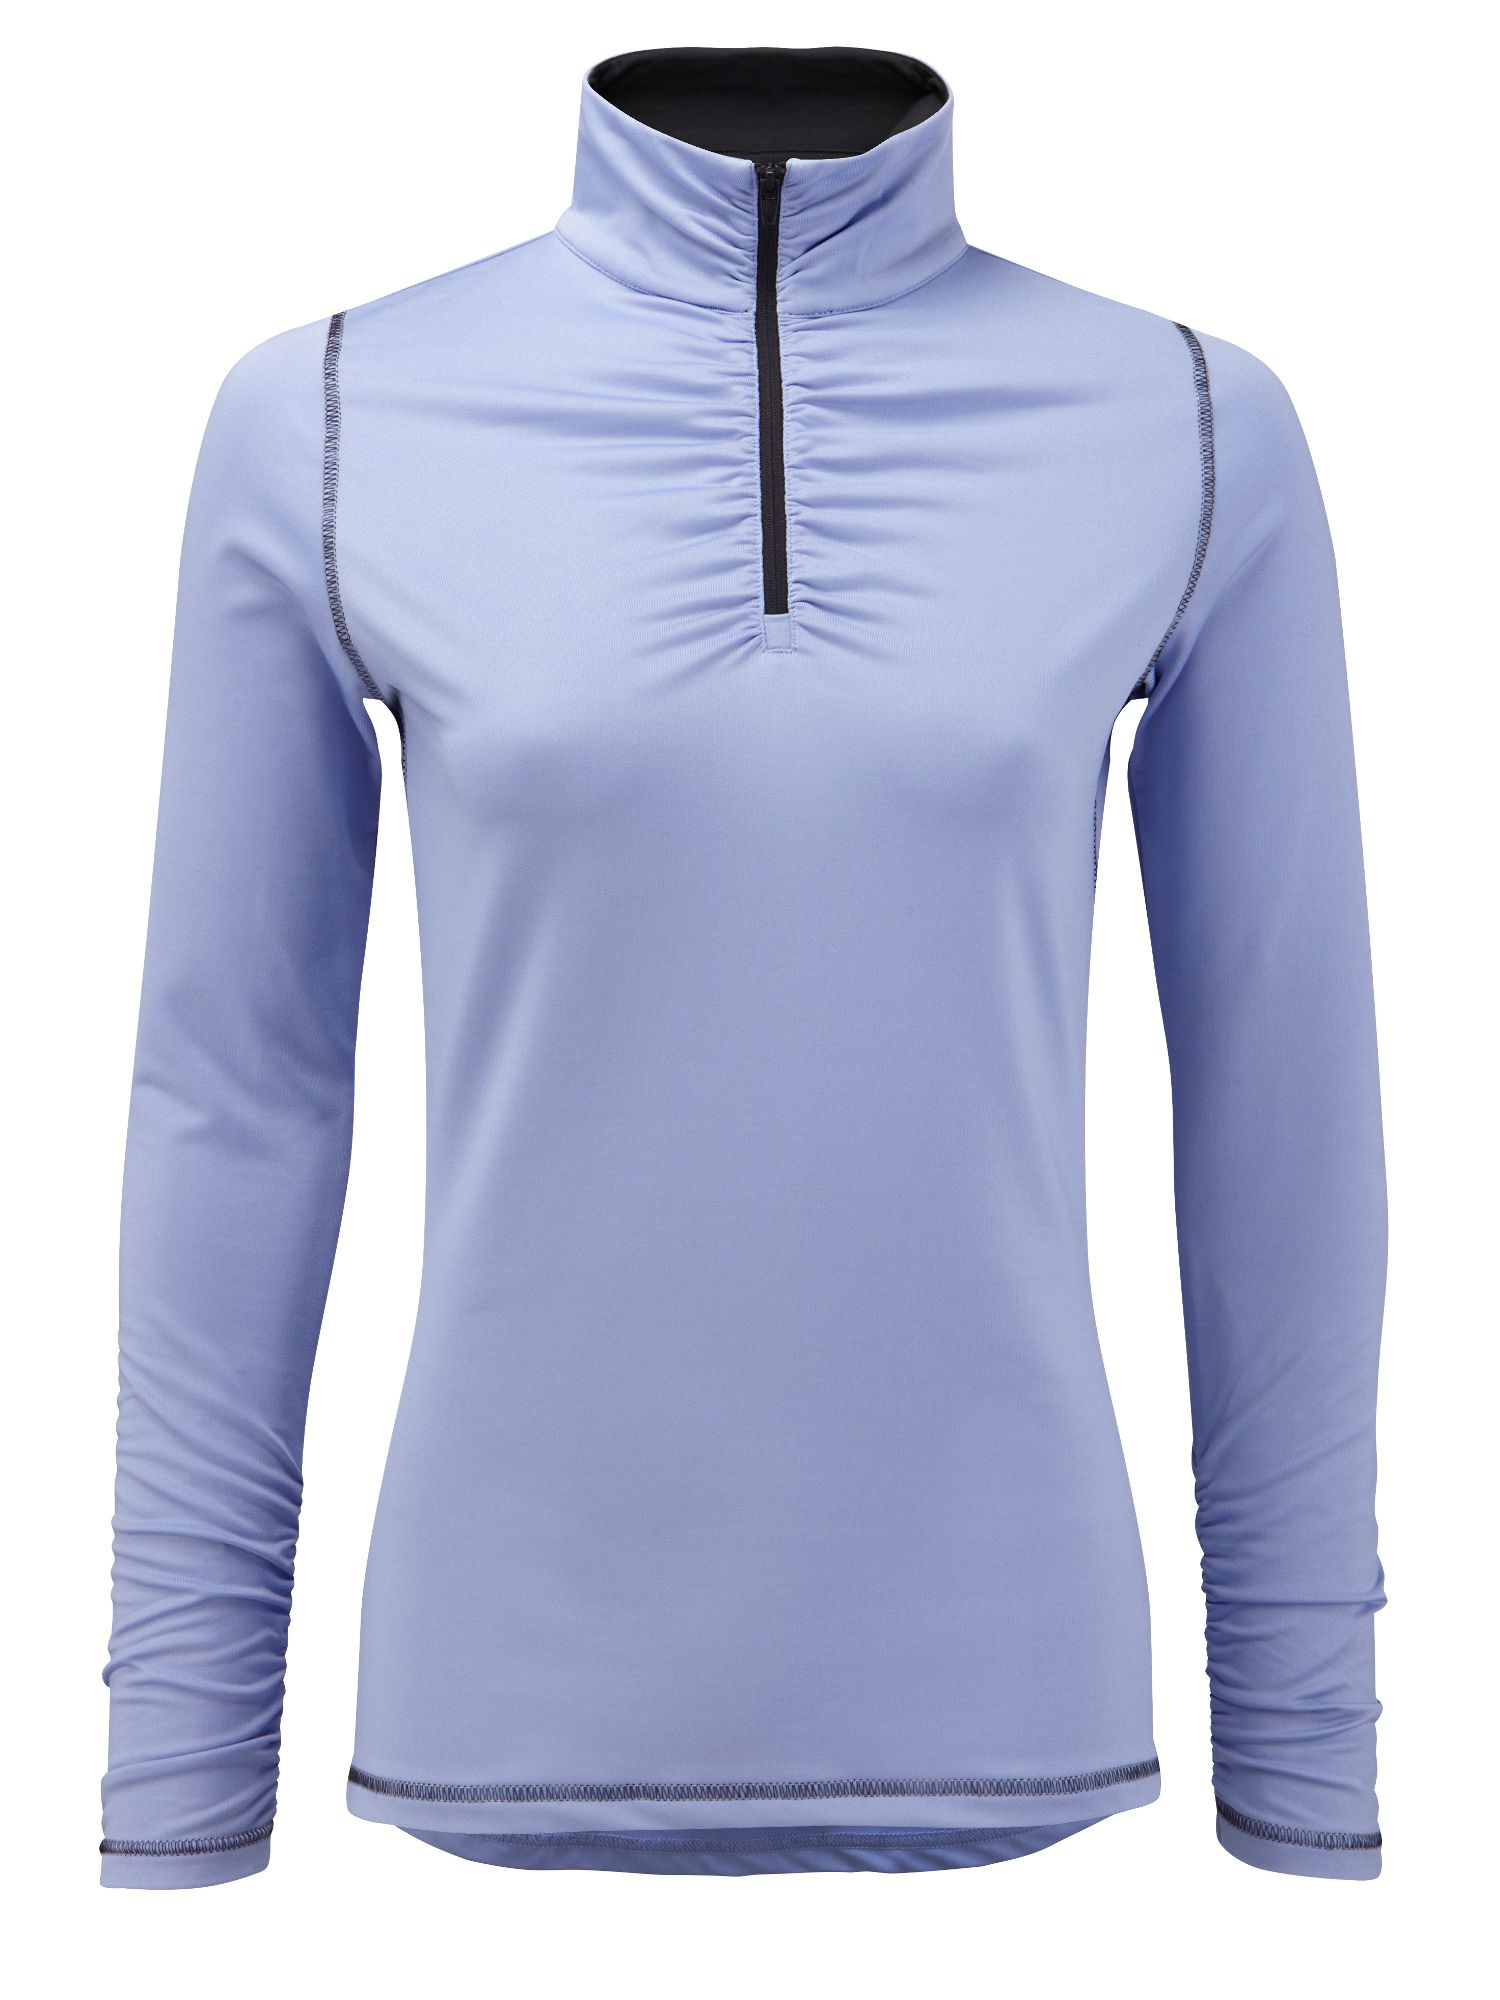 Lunar 1/4 zip base layer